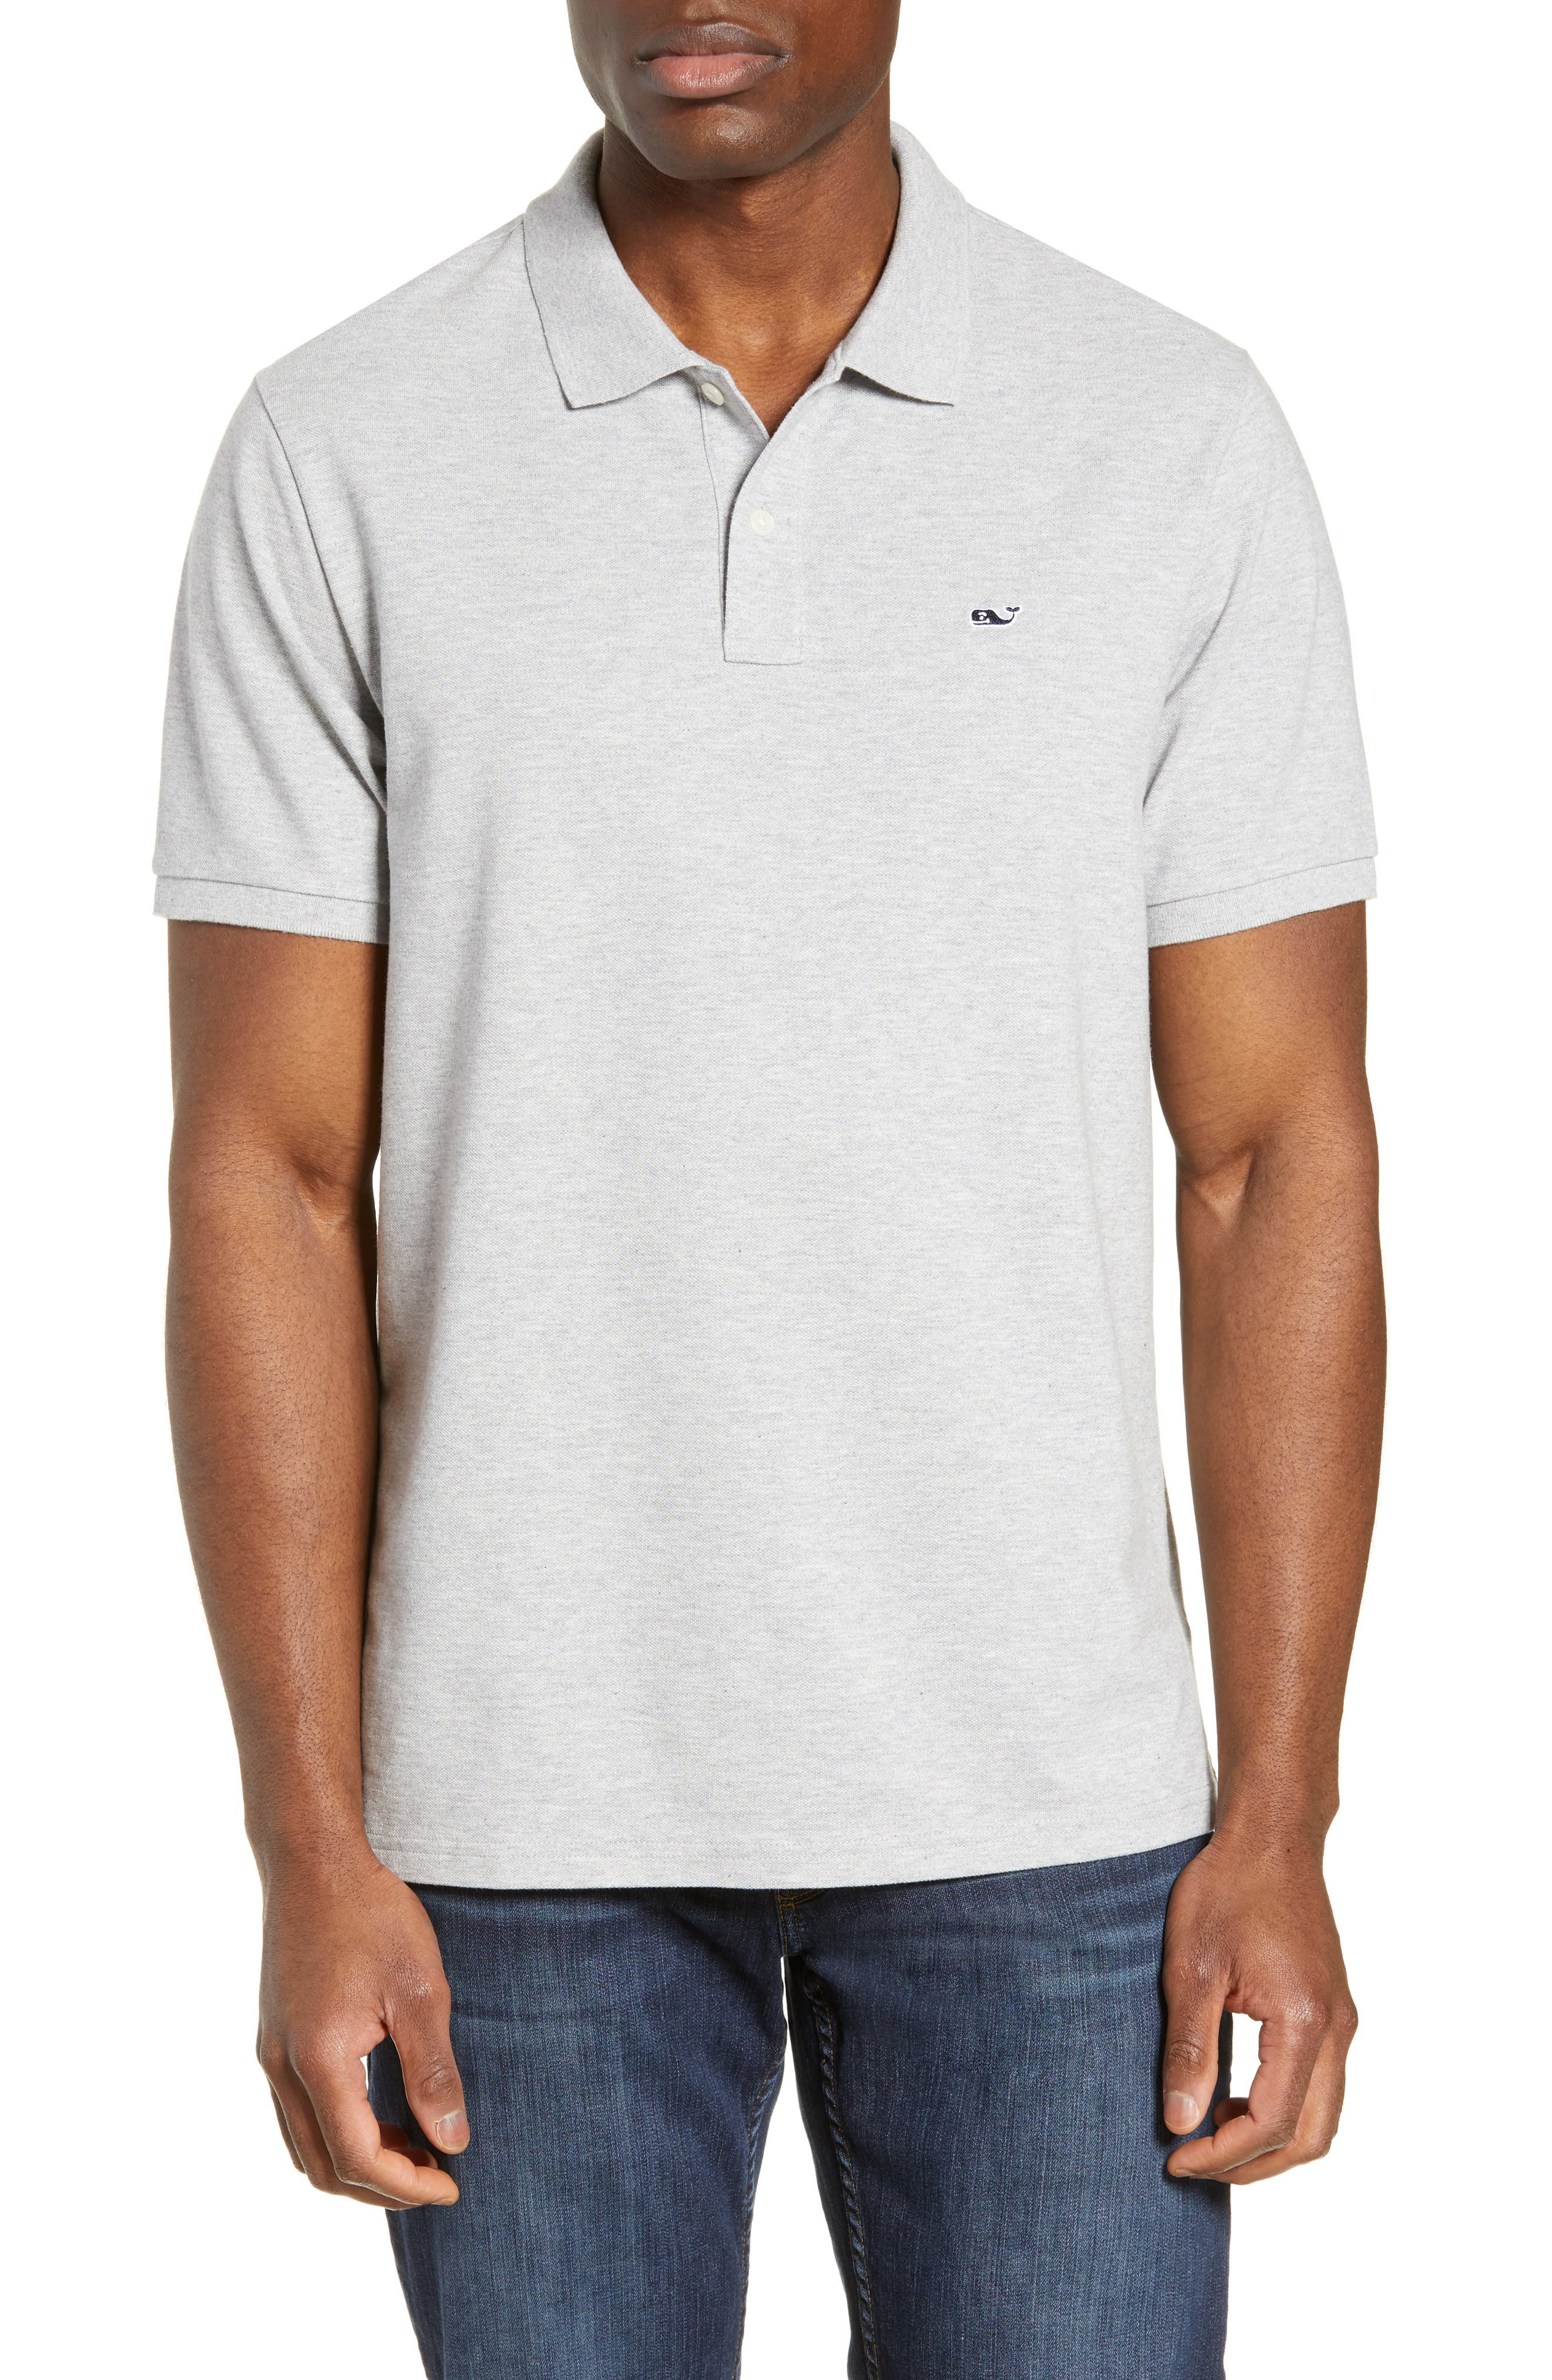 VINEYARD VINES Regular Fit Stretch Piqué Polo, Main, color, LIGHT GRAY HEATHER